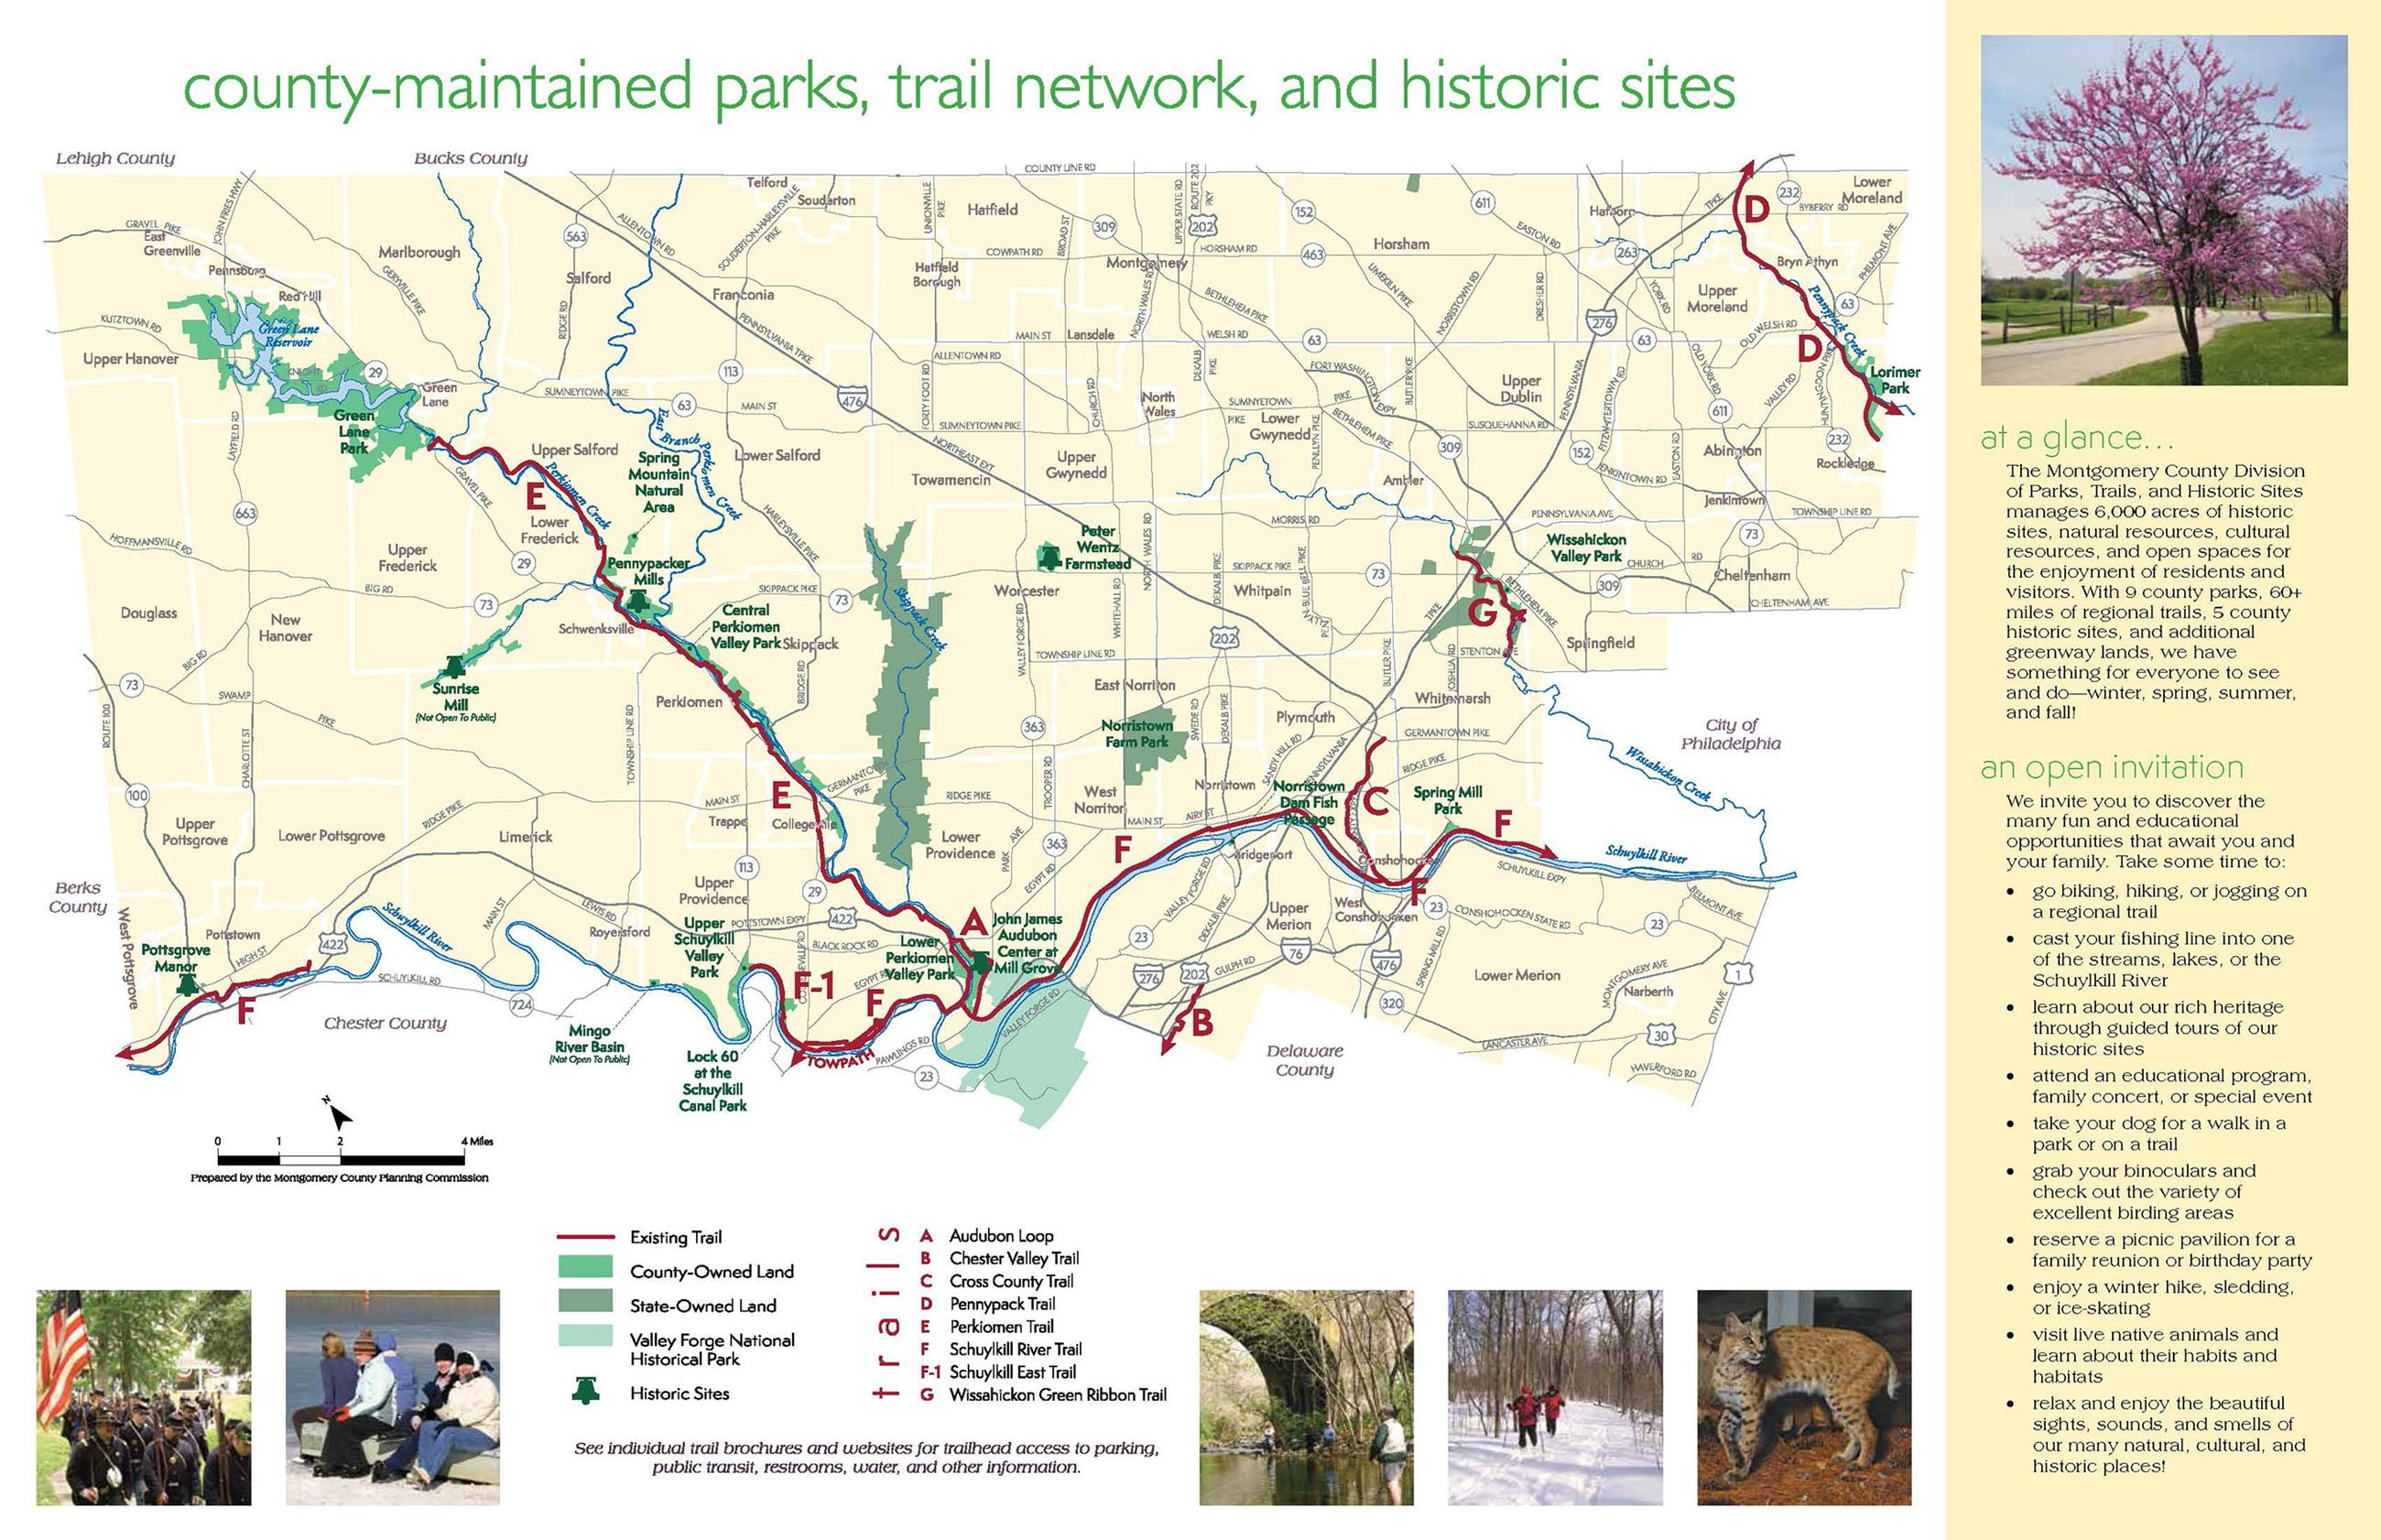 Parks, Trails, & Historic Sites | Montgomery County, PA ... on berks county, plymouth township pa map, king of prussia, lancaster county pa map, lehigh valley, tioga county pa map, fulton county pa map, monroe county pa map, allegheny county, schuylkill county, pennsylvania county map, washington county pa map, chester county road map, hazleton pa map, westmoreland county pa map, somerset county pa map, bucks county, philadelphia zip code map, washington county, north wales, philadelphia county, lehigh county pa map, wayne county pa map, lancaster county, lehigh county, delaware county, carbon county pa map, crawford county pa map, monroe county, downingtown pa map, chester county, franklin county, northampton county pa map, bucks county pa map, jenkintown pa map, lackawanna county, delaware valley,